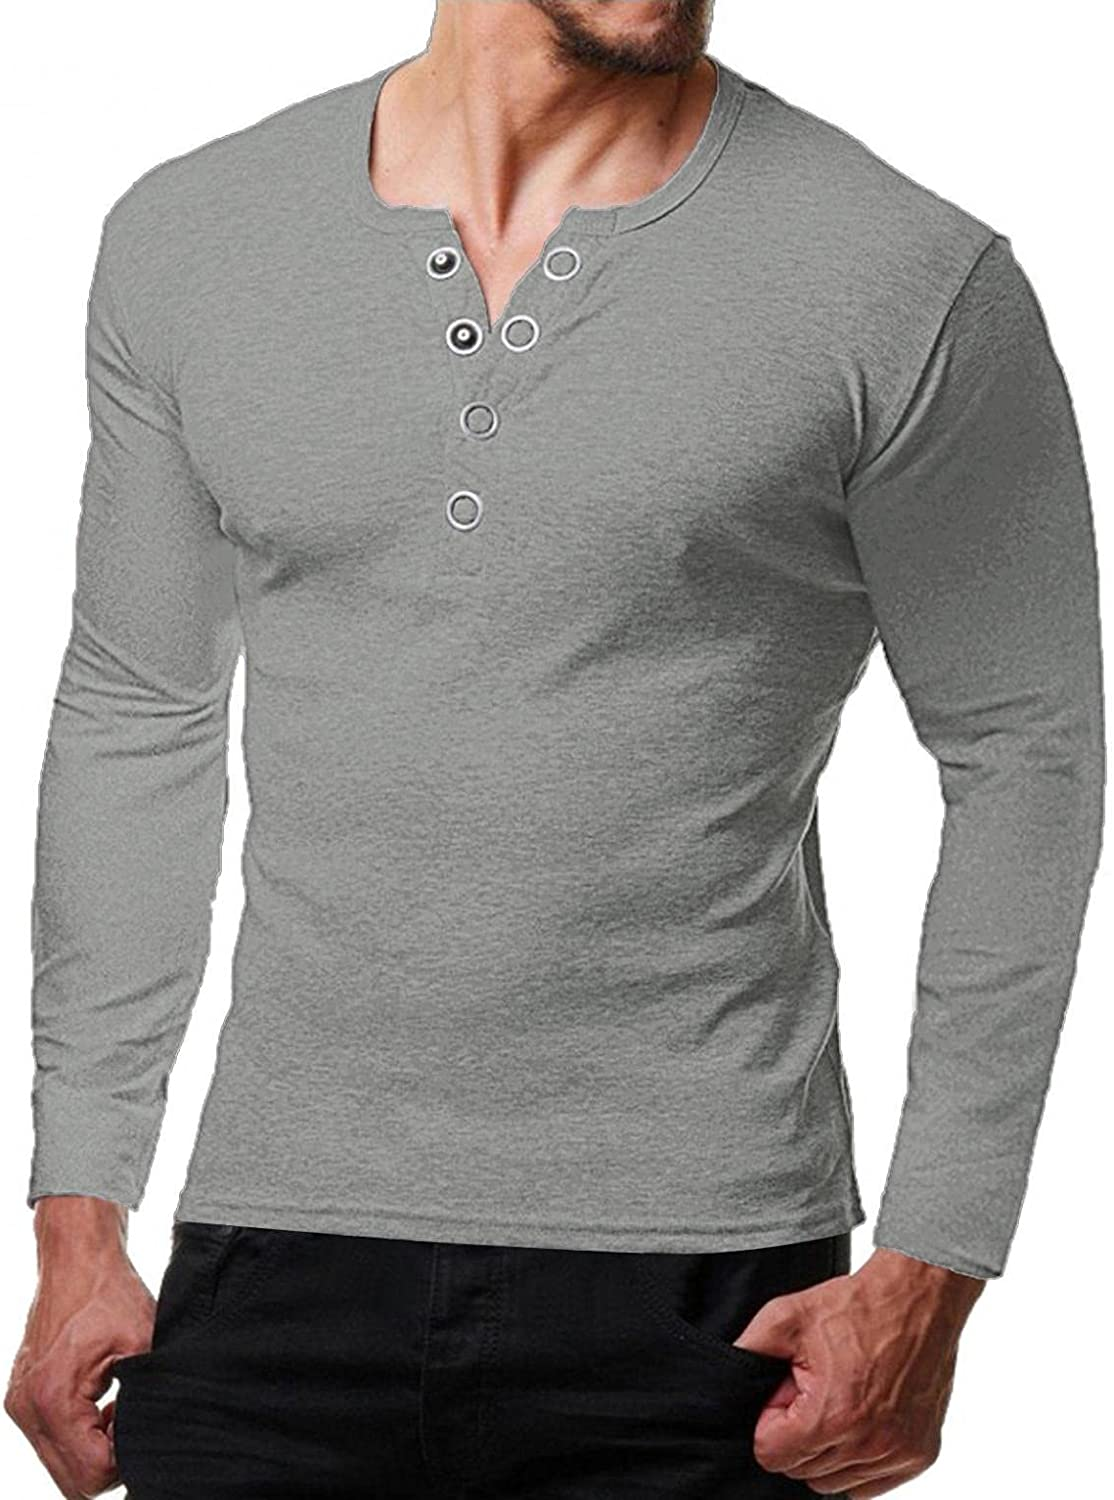 LEIYAN Mens Henley Shirt Casual Regular Fit Long Sleeve Slim Fit Gym Workout Shirt Athletic Muscle Tops